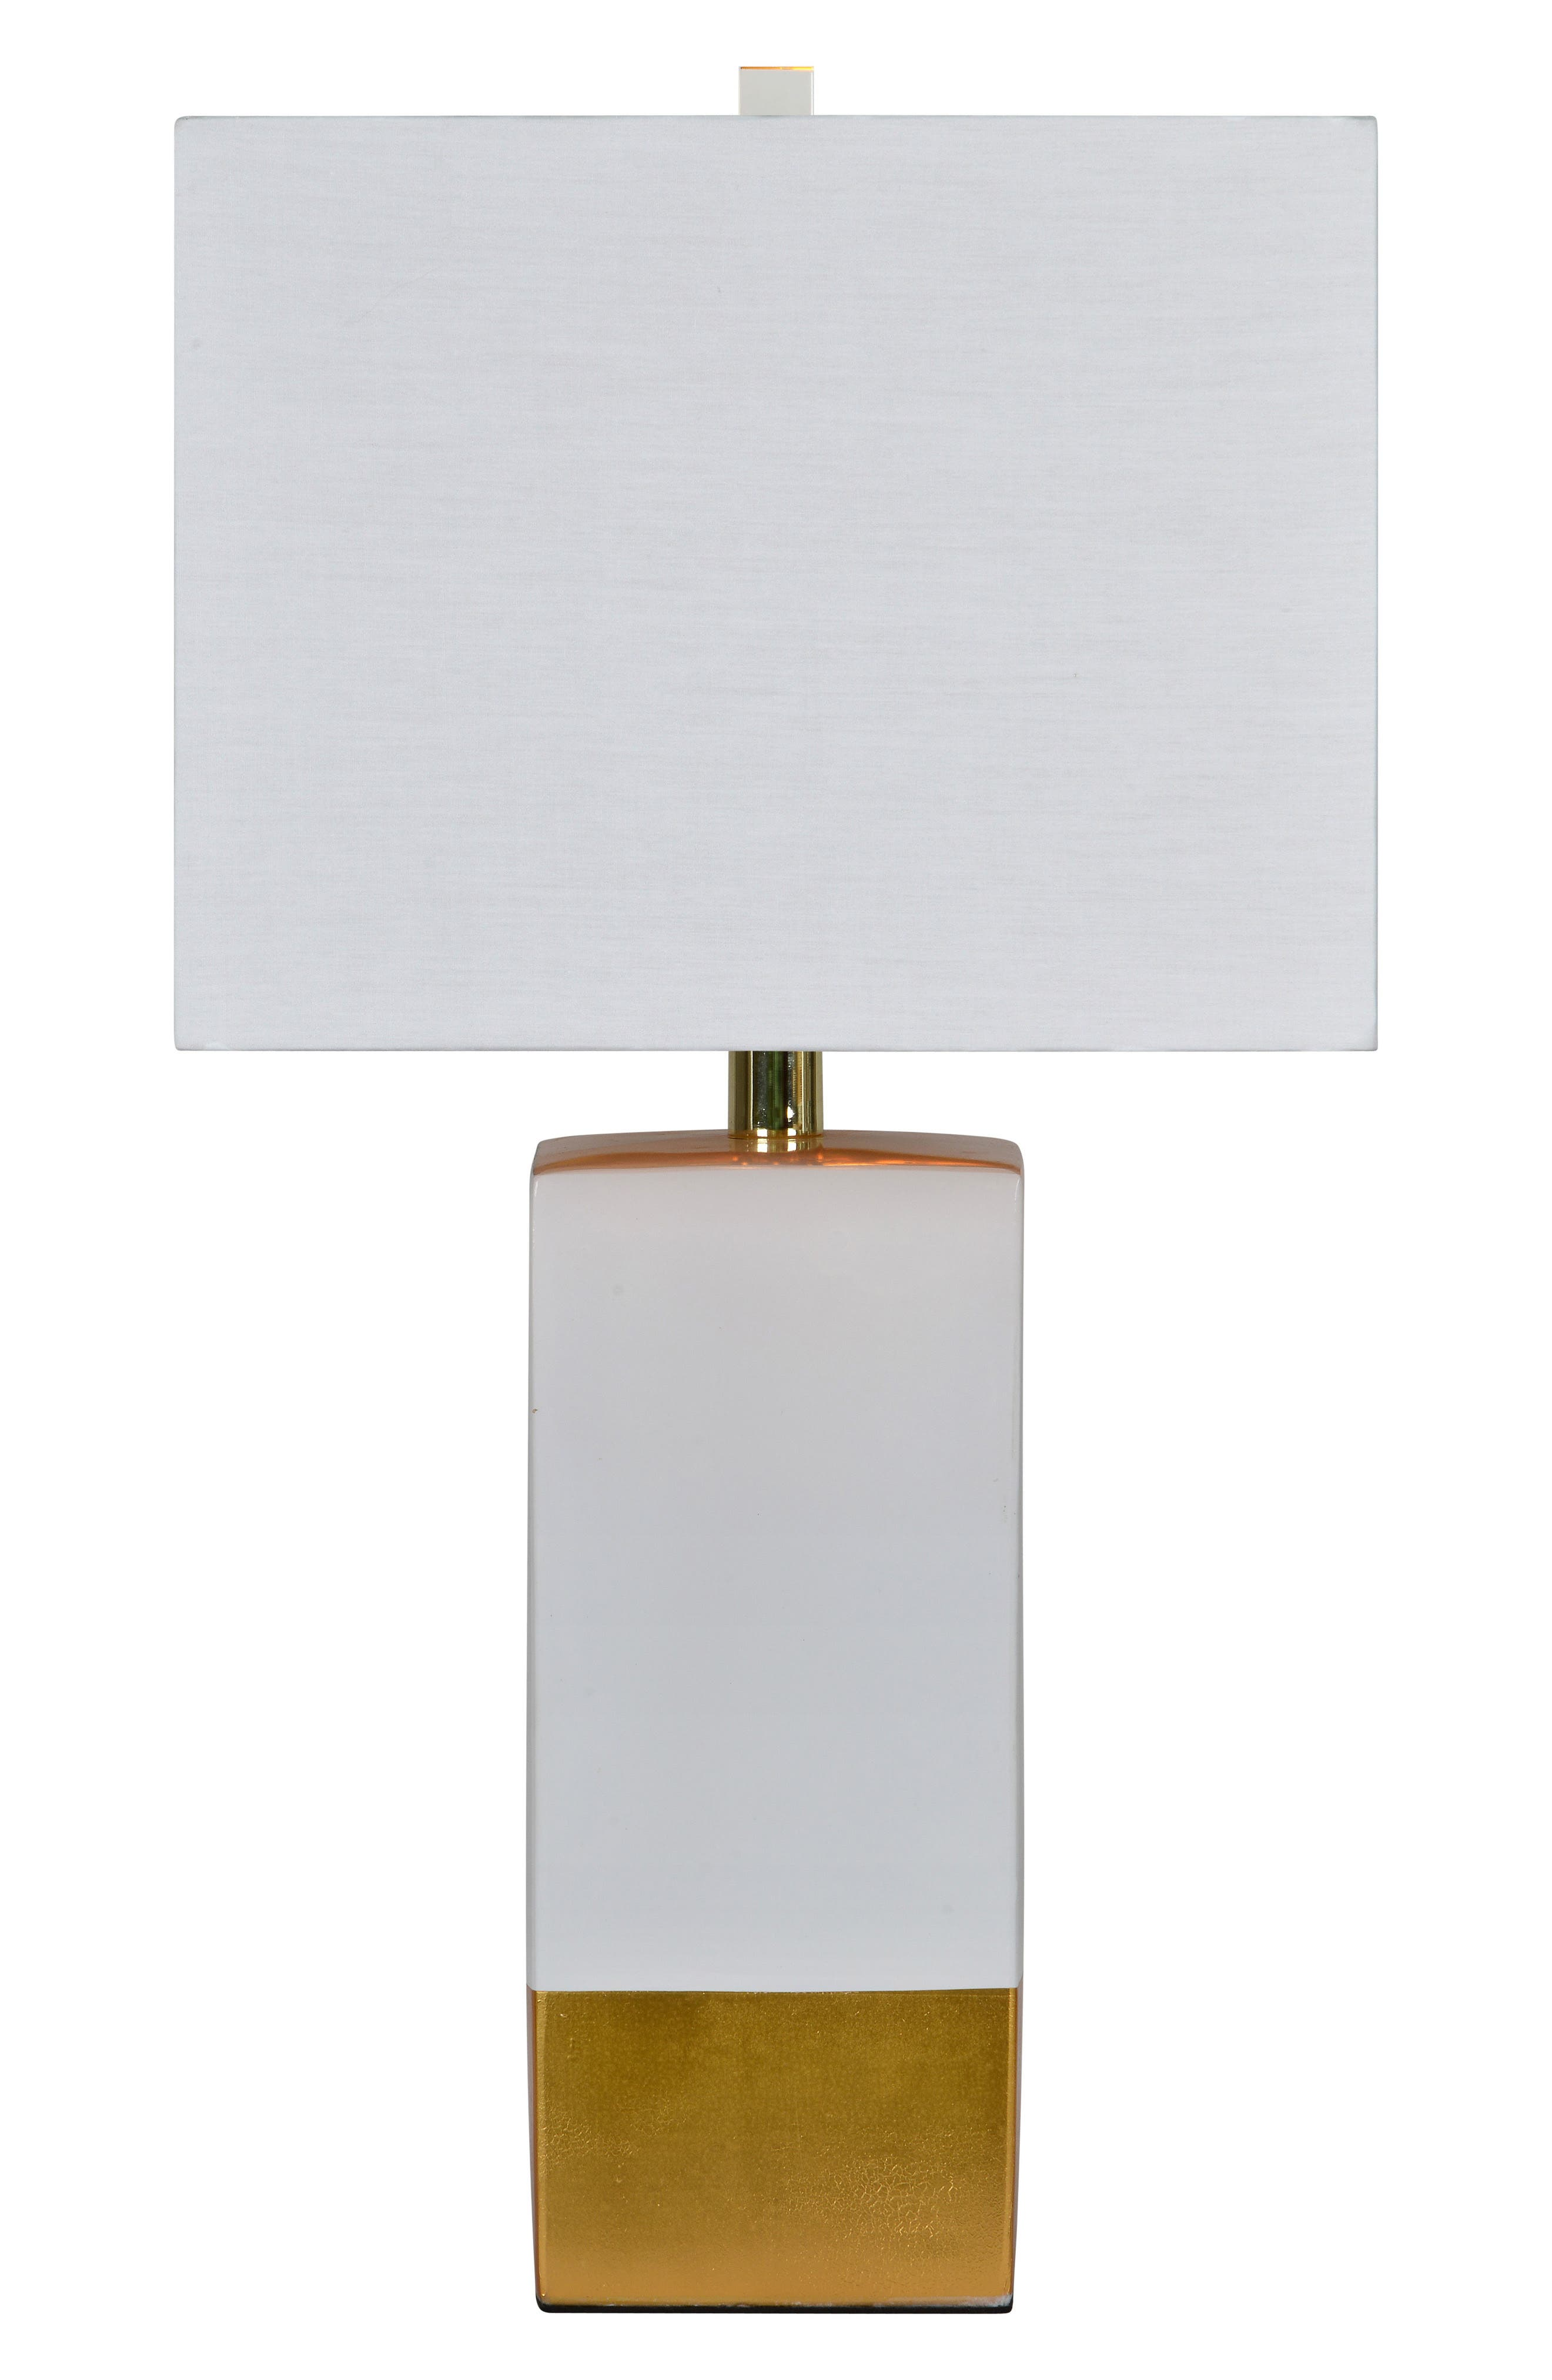 Le Smoking Table Lamp,                         Main,                         color, White/ Gold